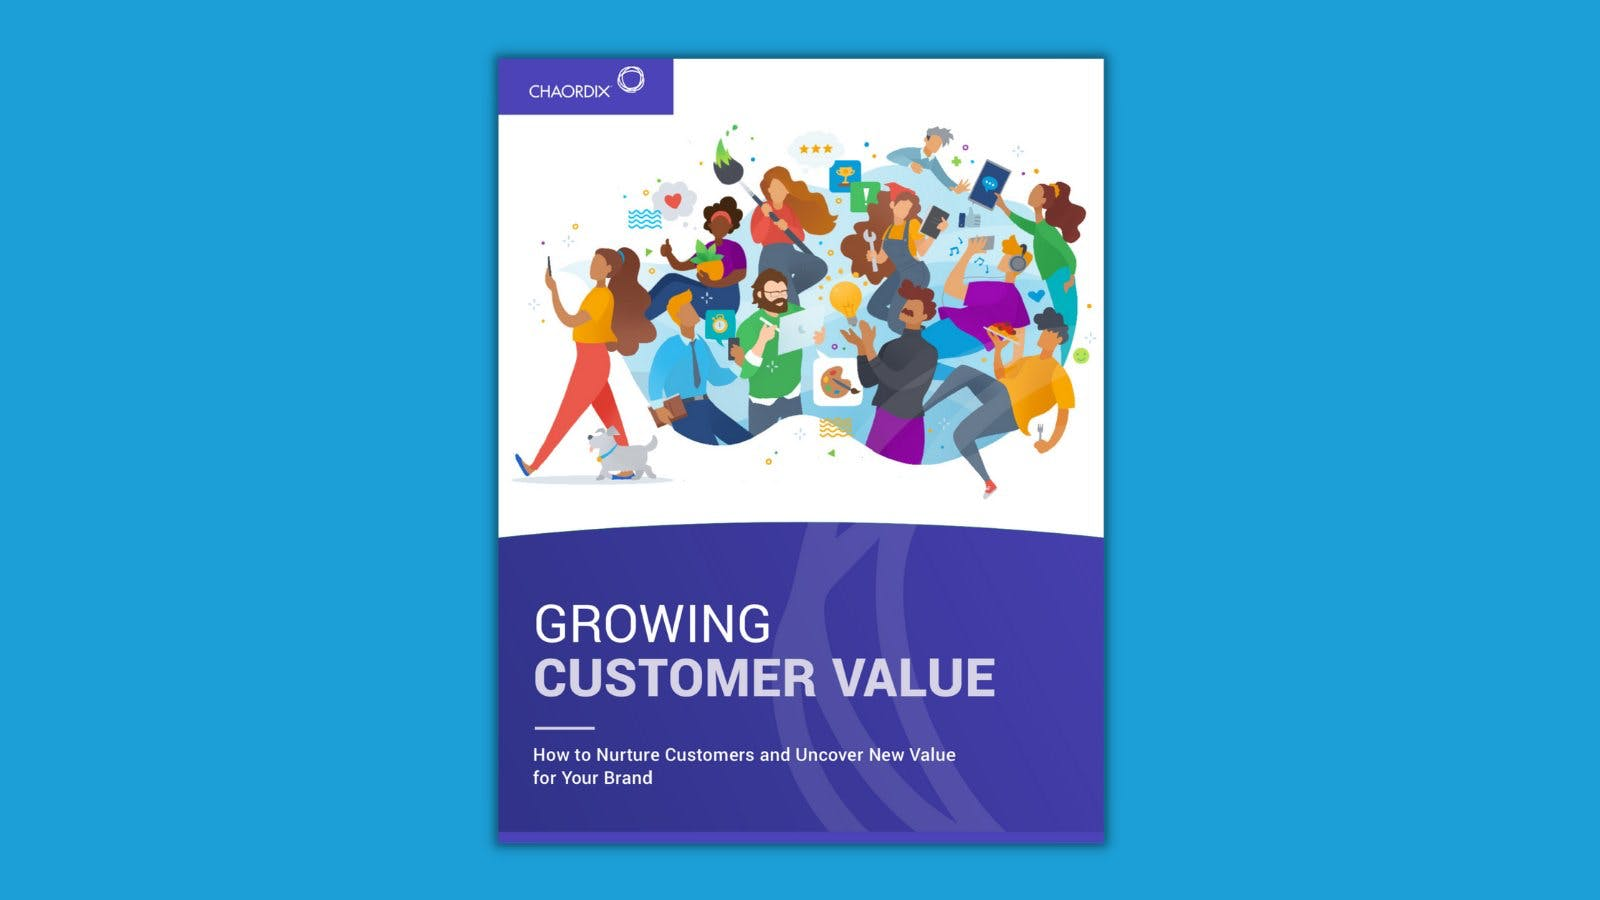 A digital image of the Growing Customer Value ebook cover